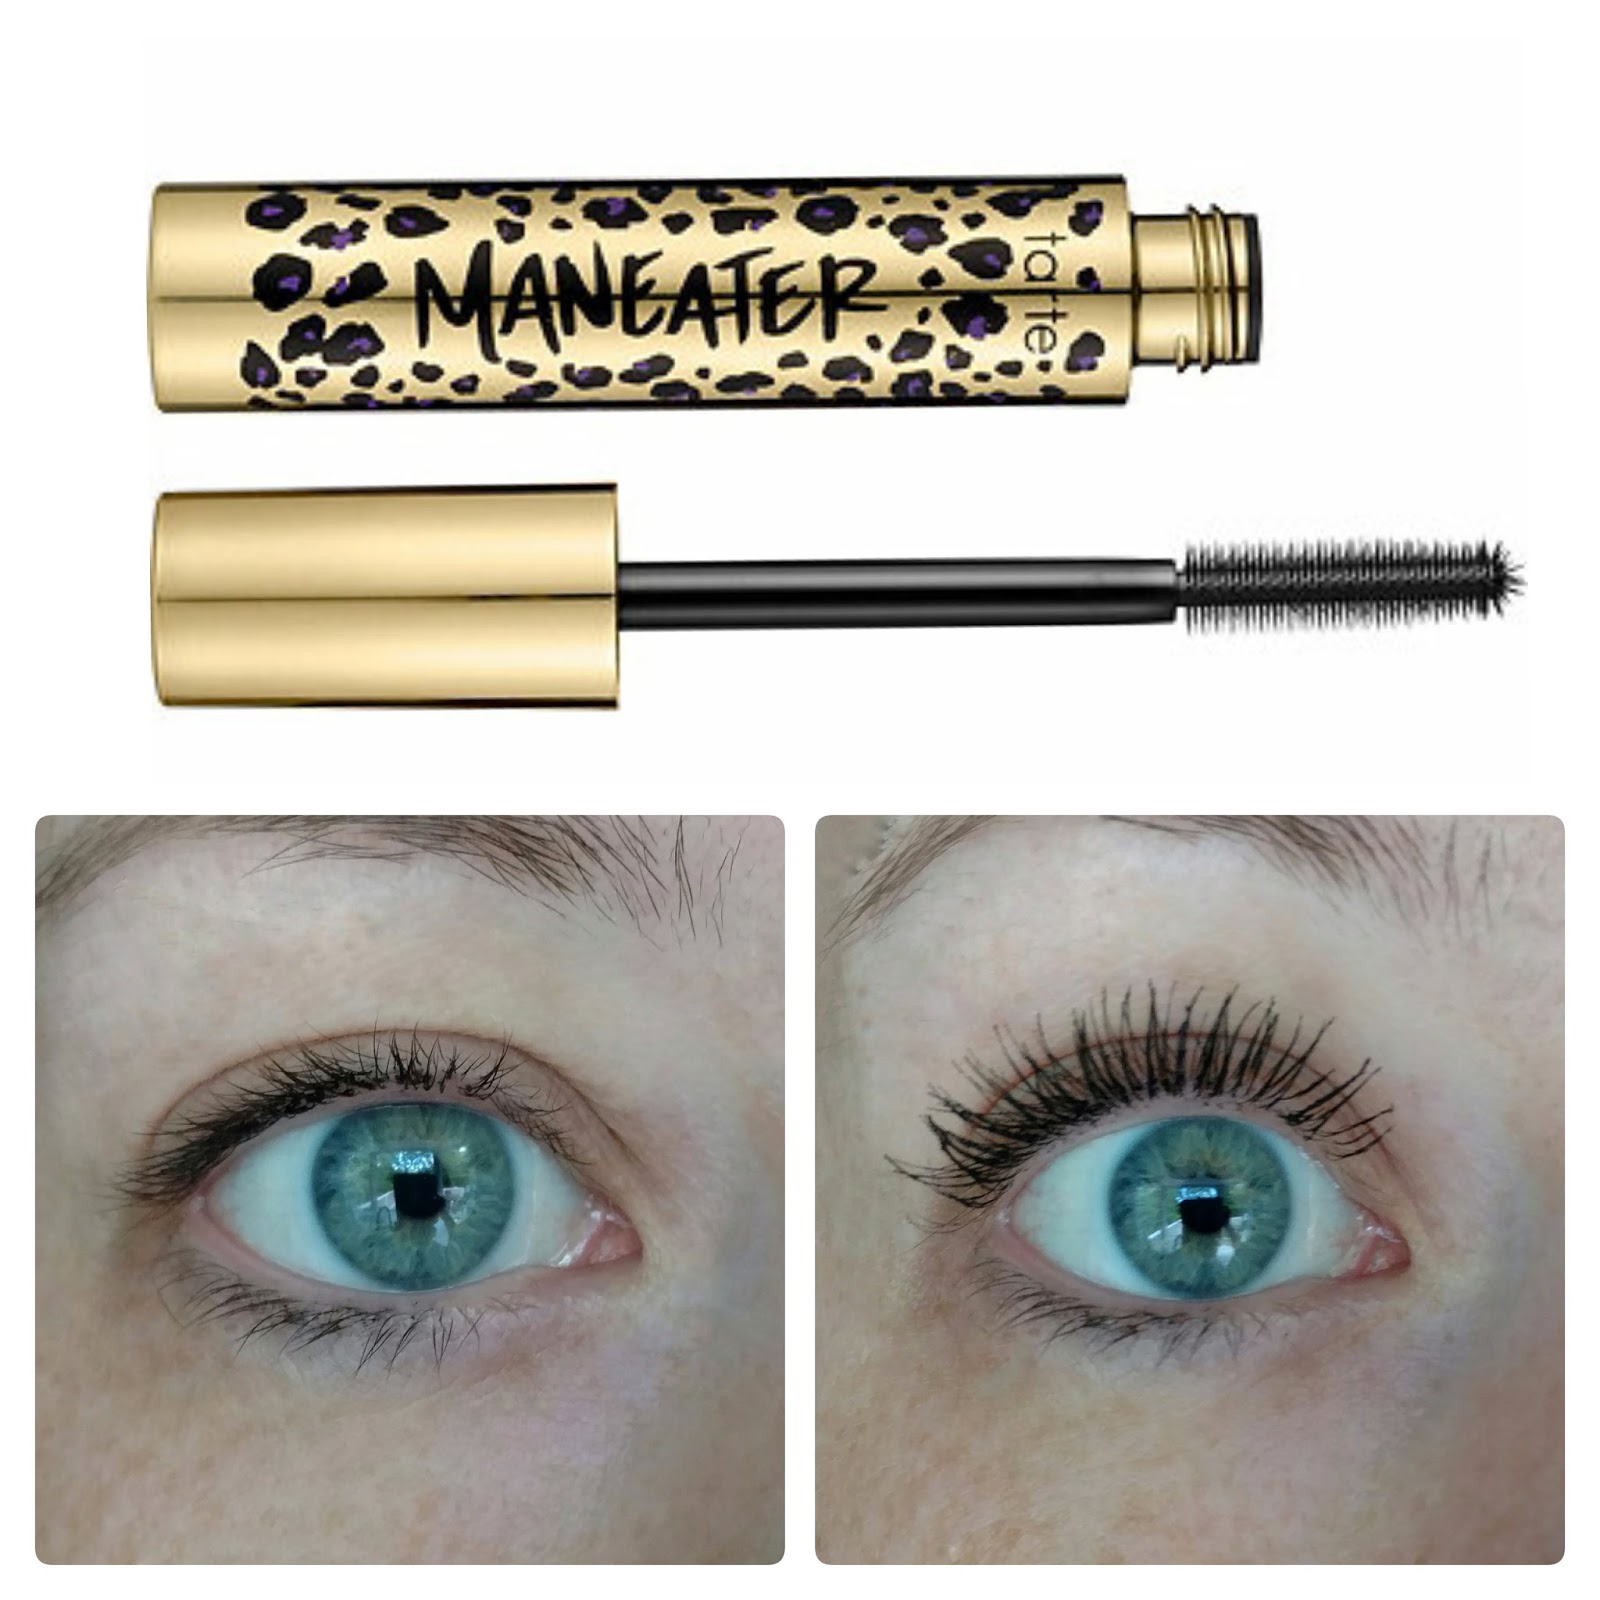 tarte maneater mascara review